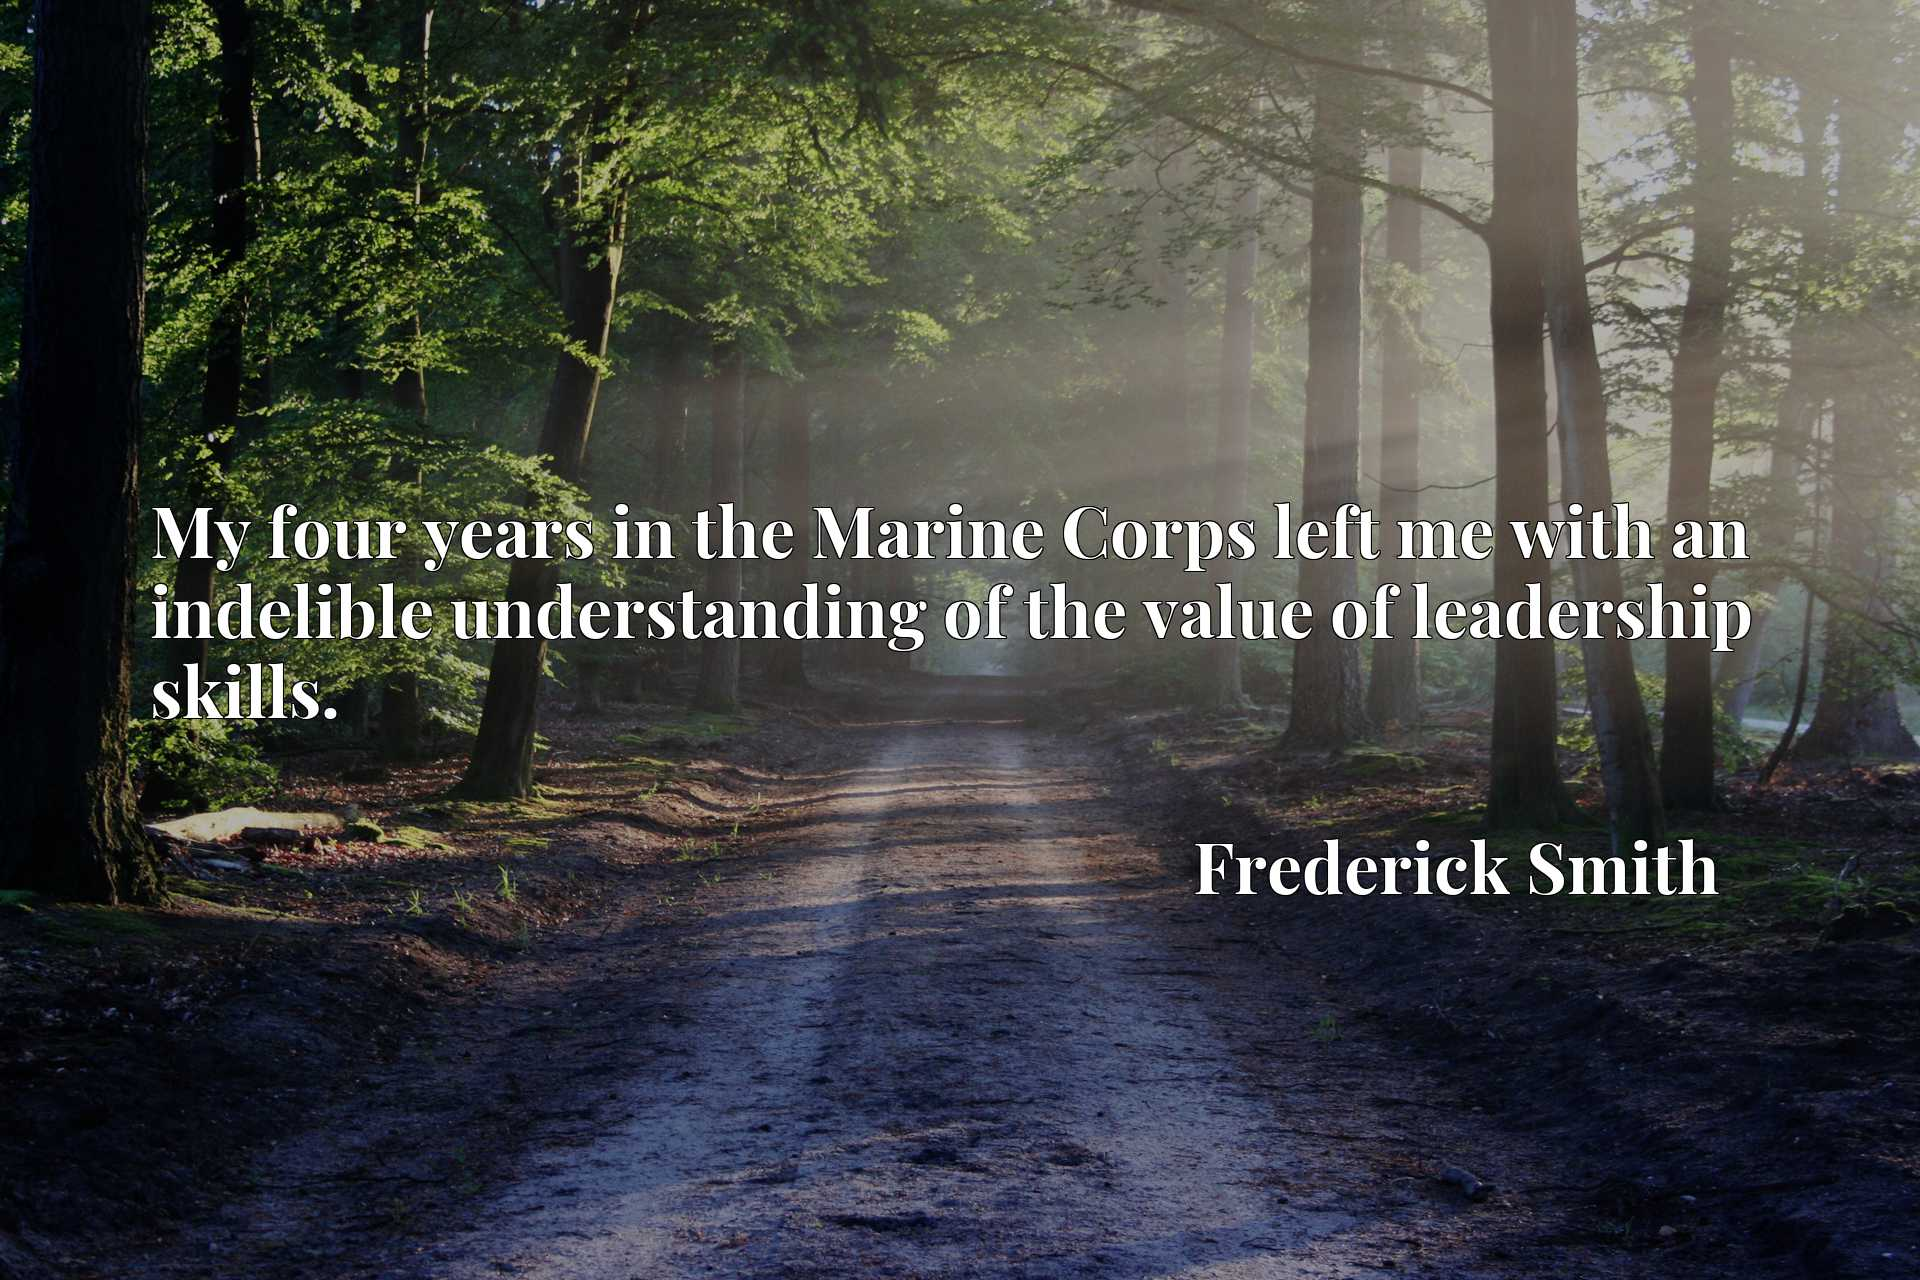 My four years in the Marine Corps left me with an indelible understanding of the value of leadership skills.